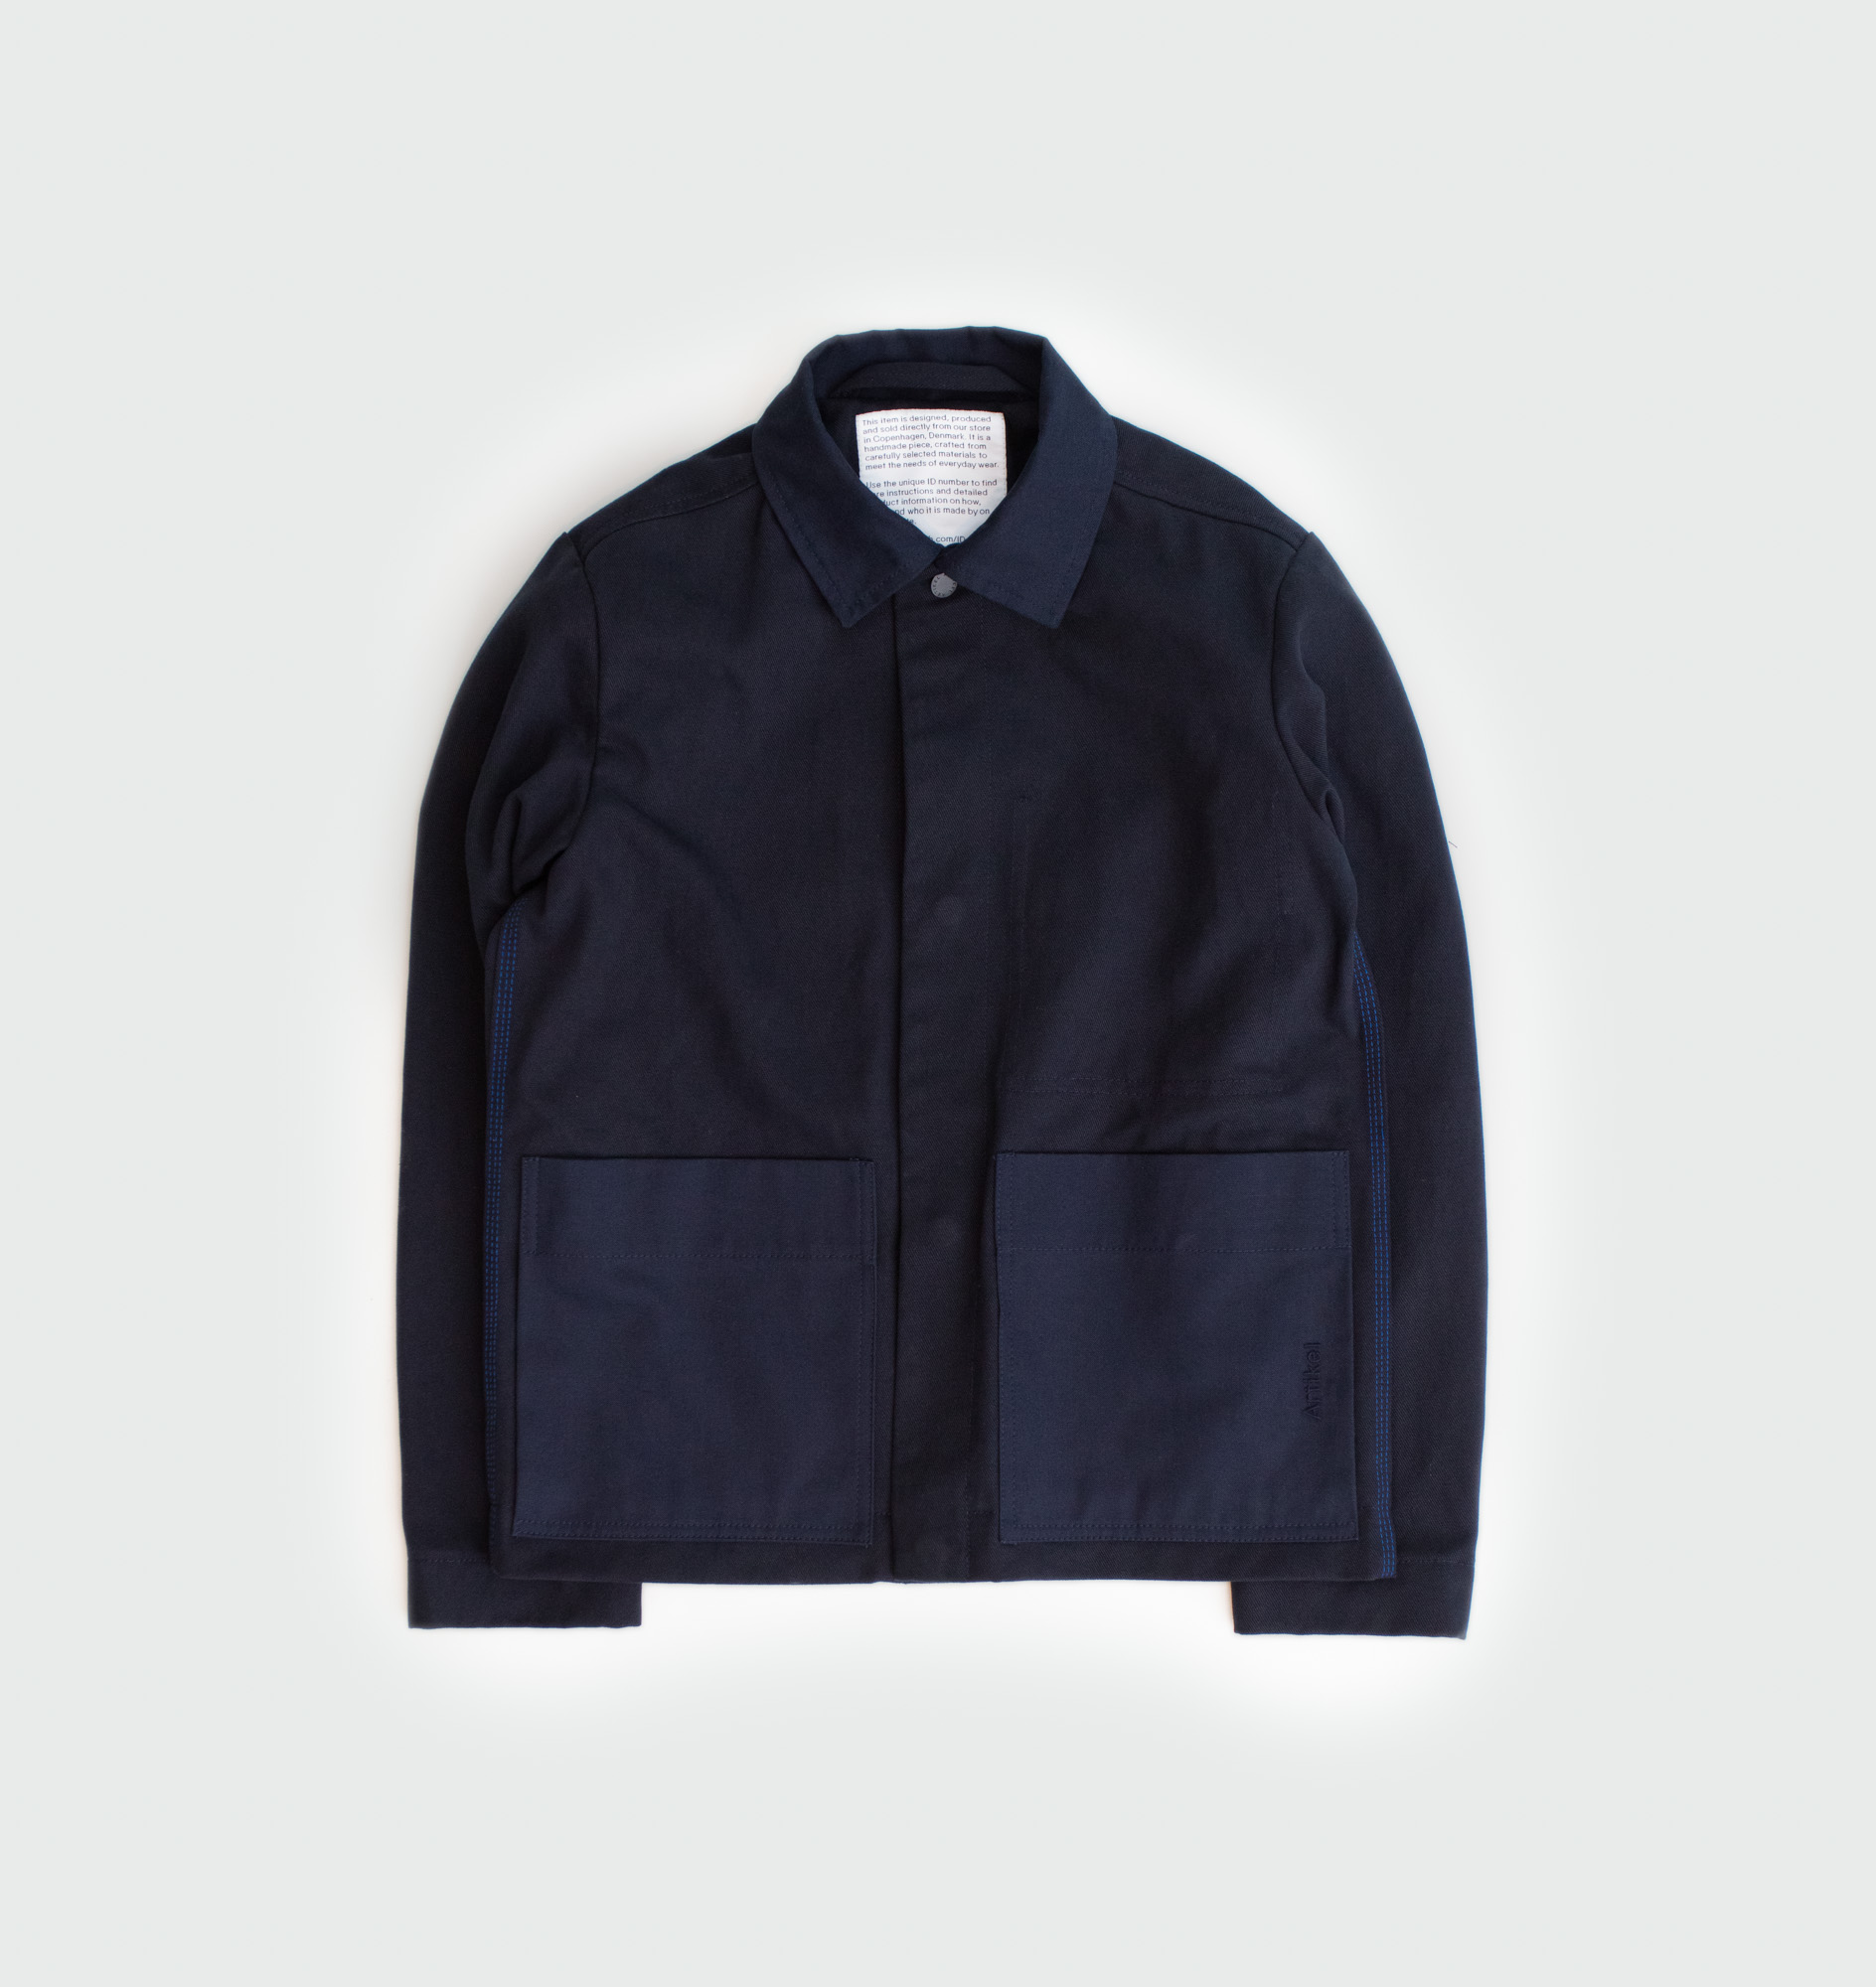 Twill jacket with Italian buttons by Artikel København, produced in Copenhagen